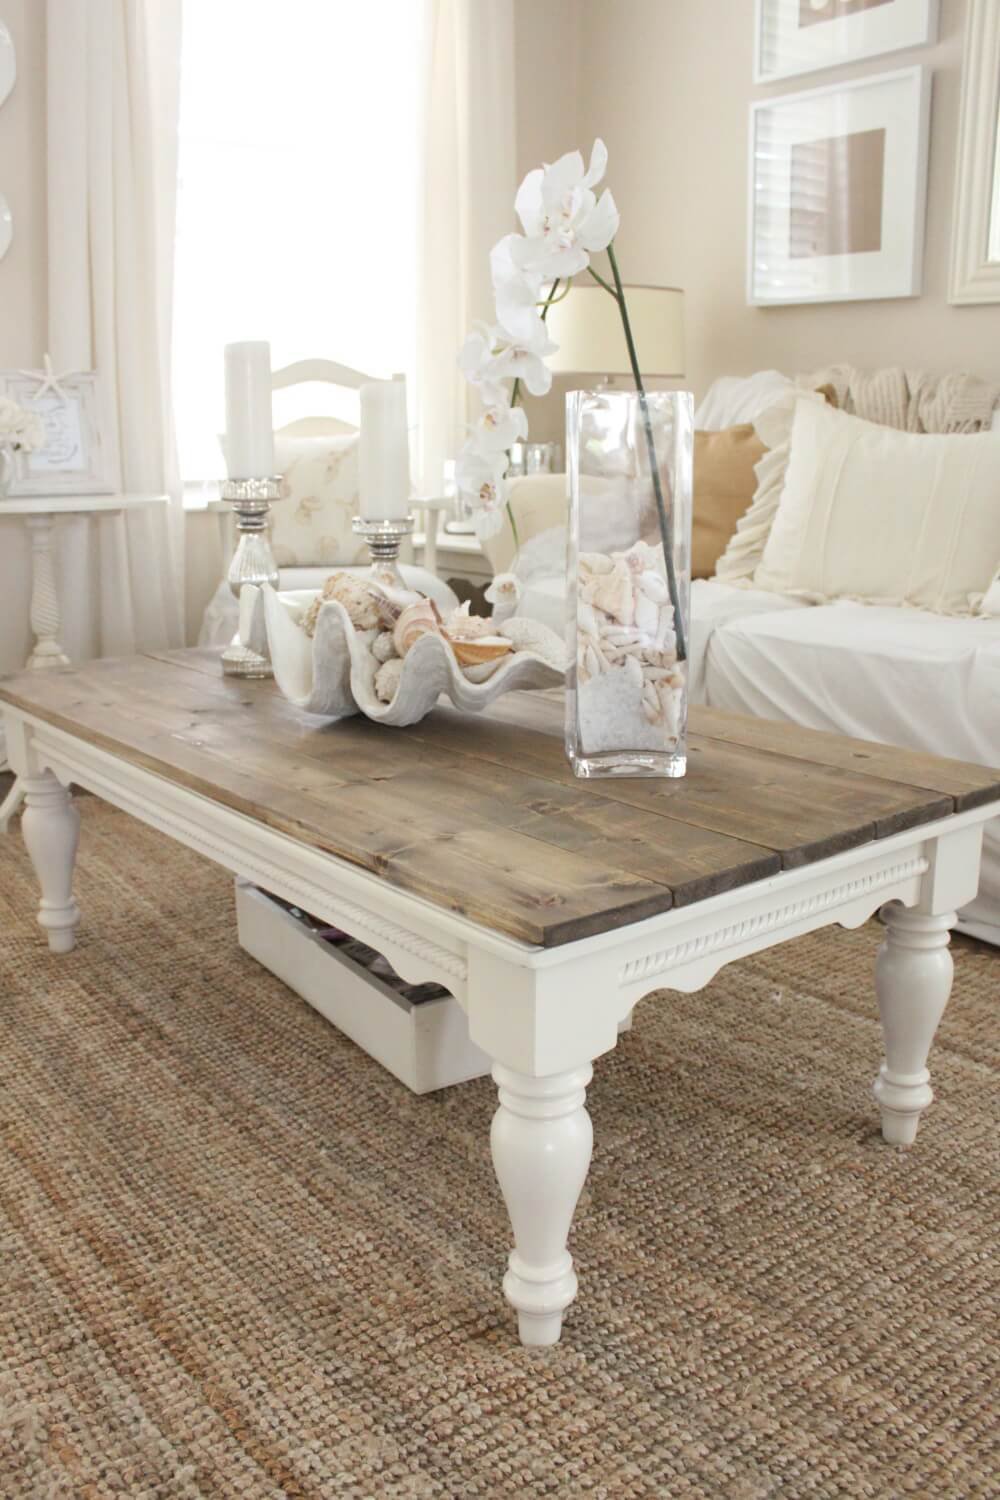 Superb 37 Best Coffee Table Decorating Ideas And Designs For 2019 Alphanode Cool Chair Designs And Ideas Alphanodeonline